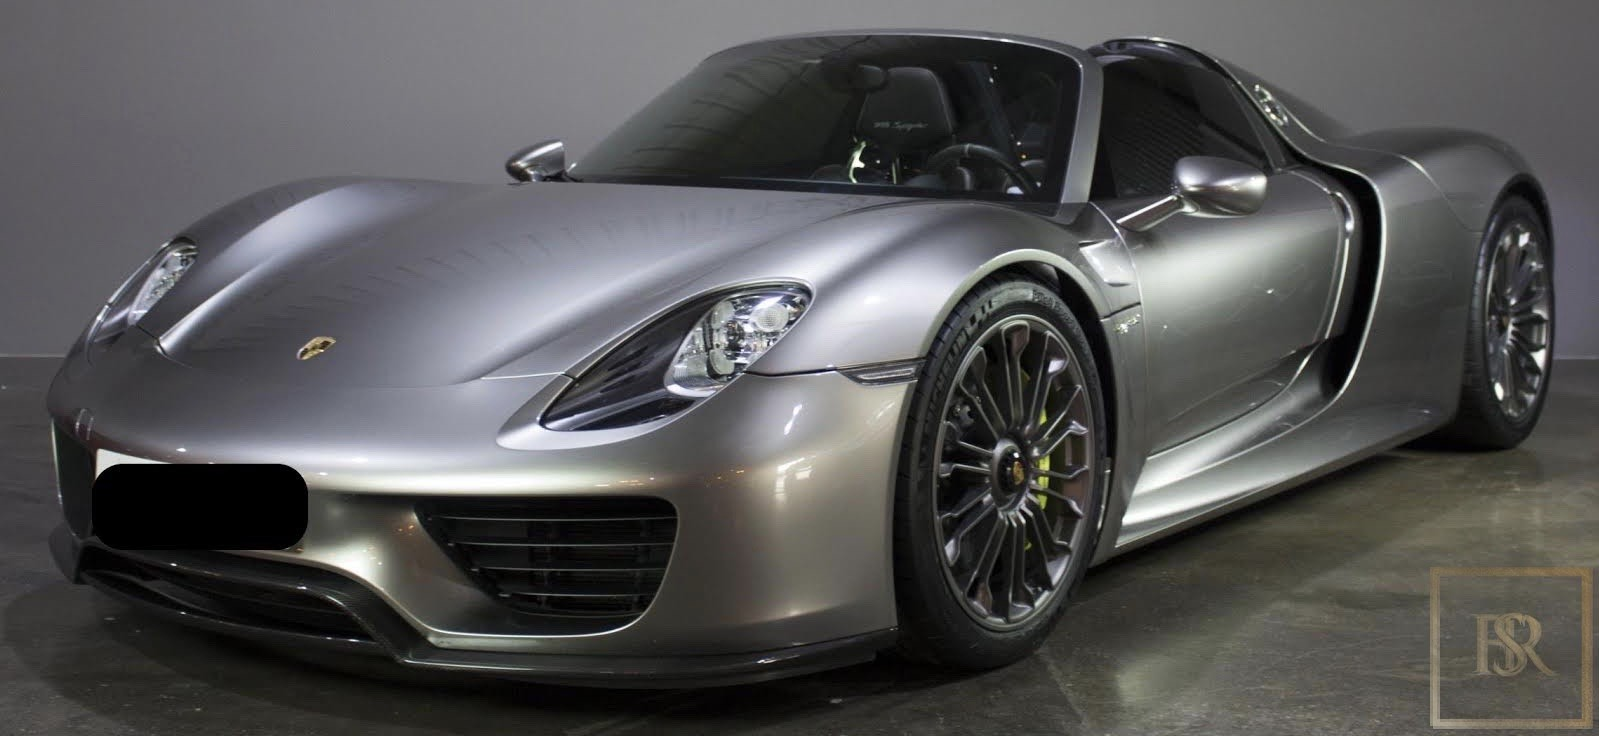 2015 Porsche 918 SPYDER for sale For Super Rich